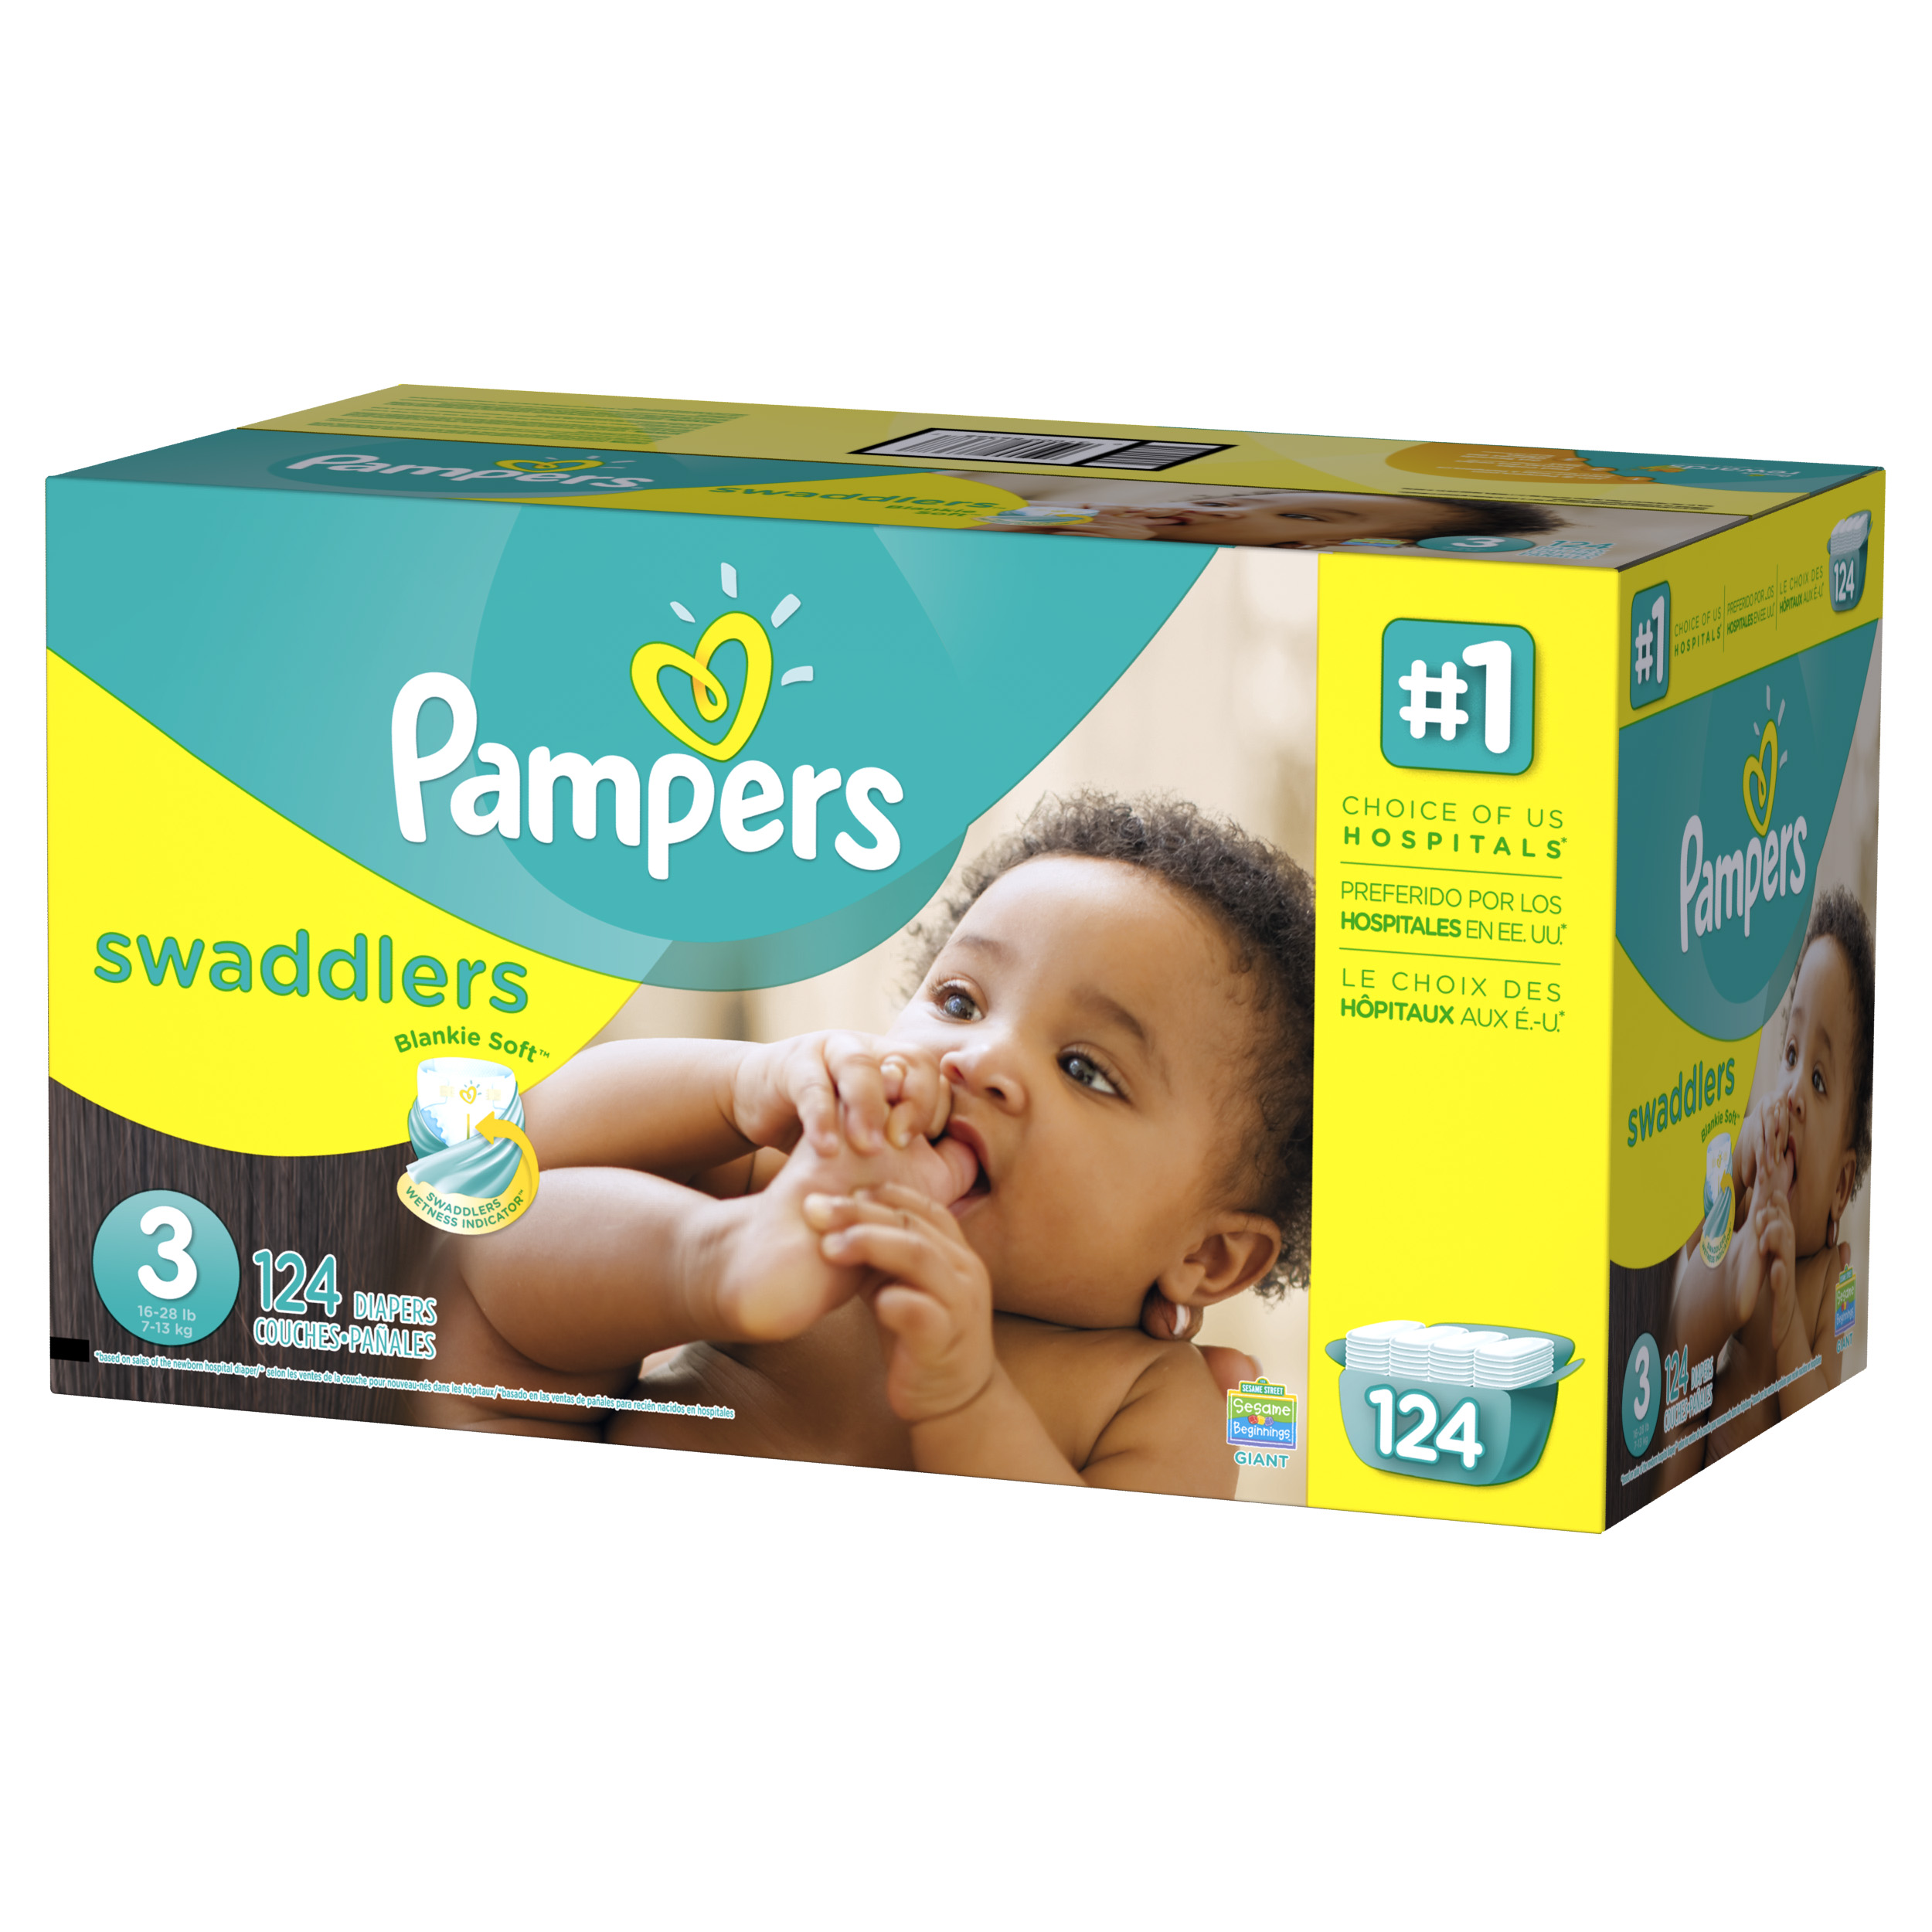 Pampers Swaddlers Diapers Size 3 124 count